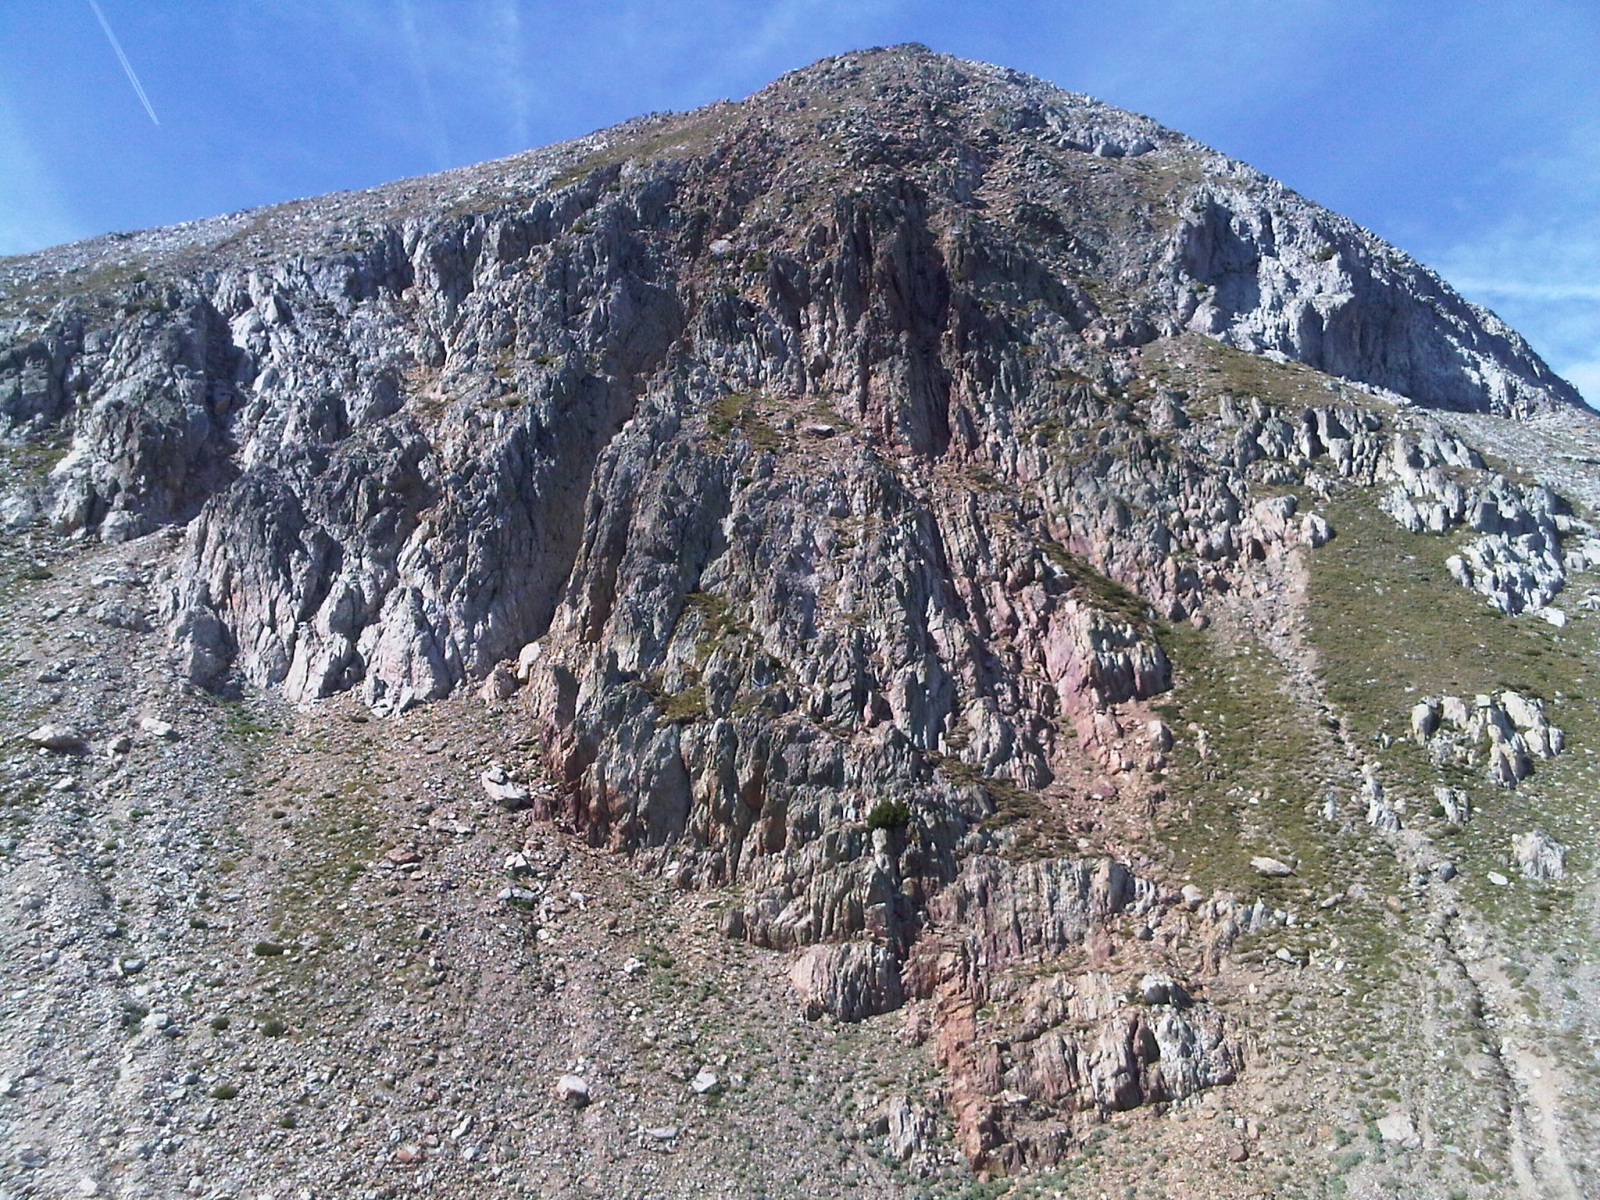 Cima di Fremamorta 2.731 m. 15th September 2013 - Photo 3 -